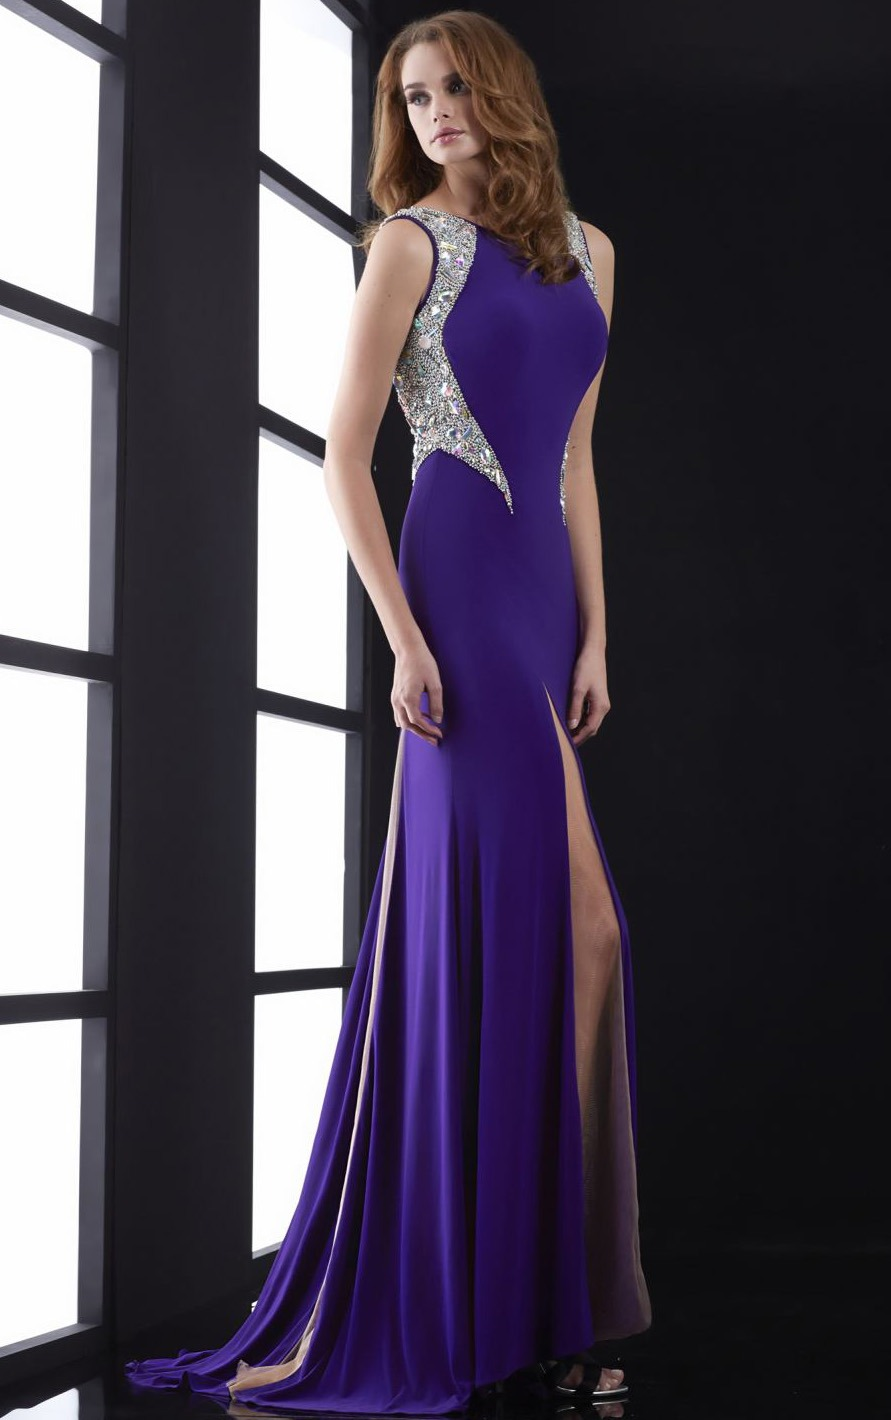 Trendy Prom 2016 dresses from Sherry London